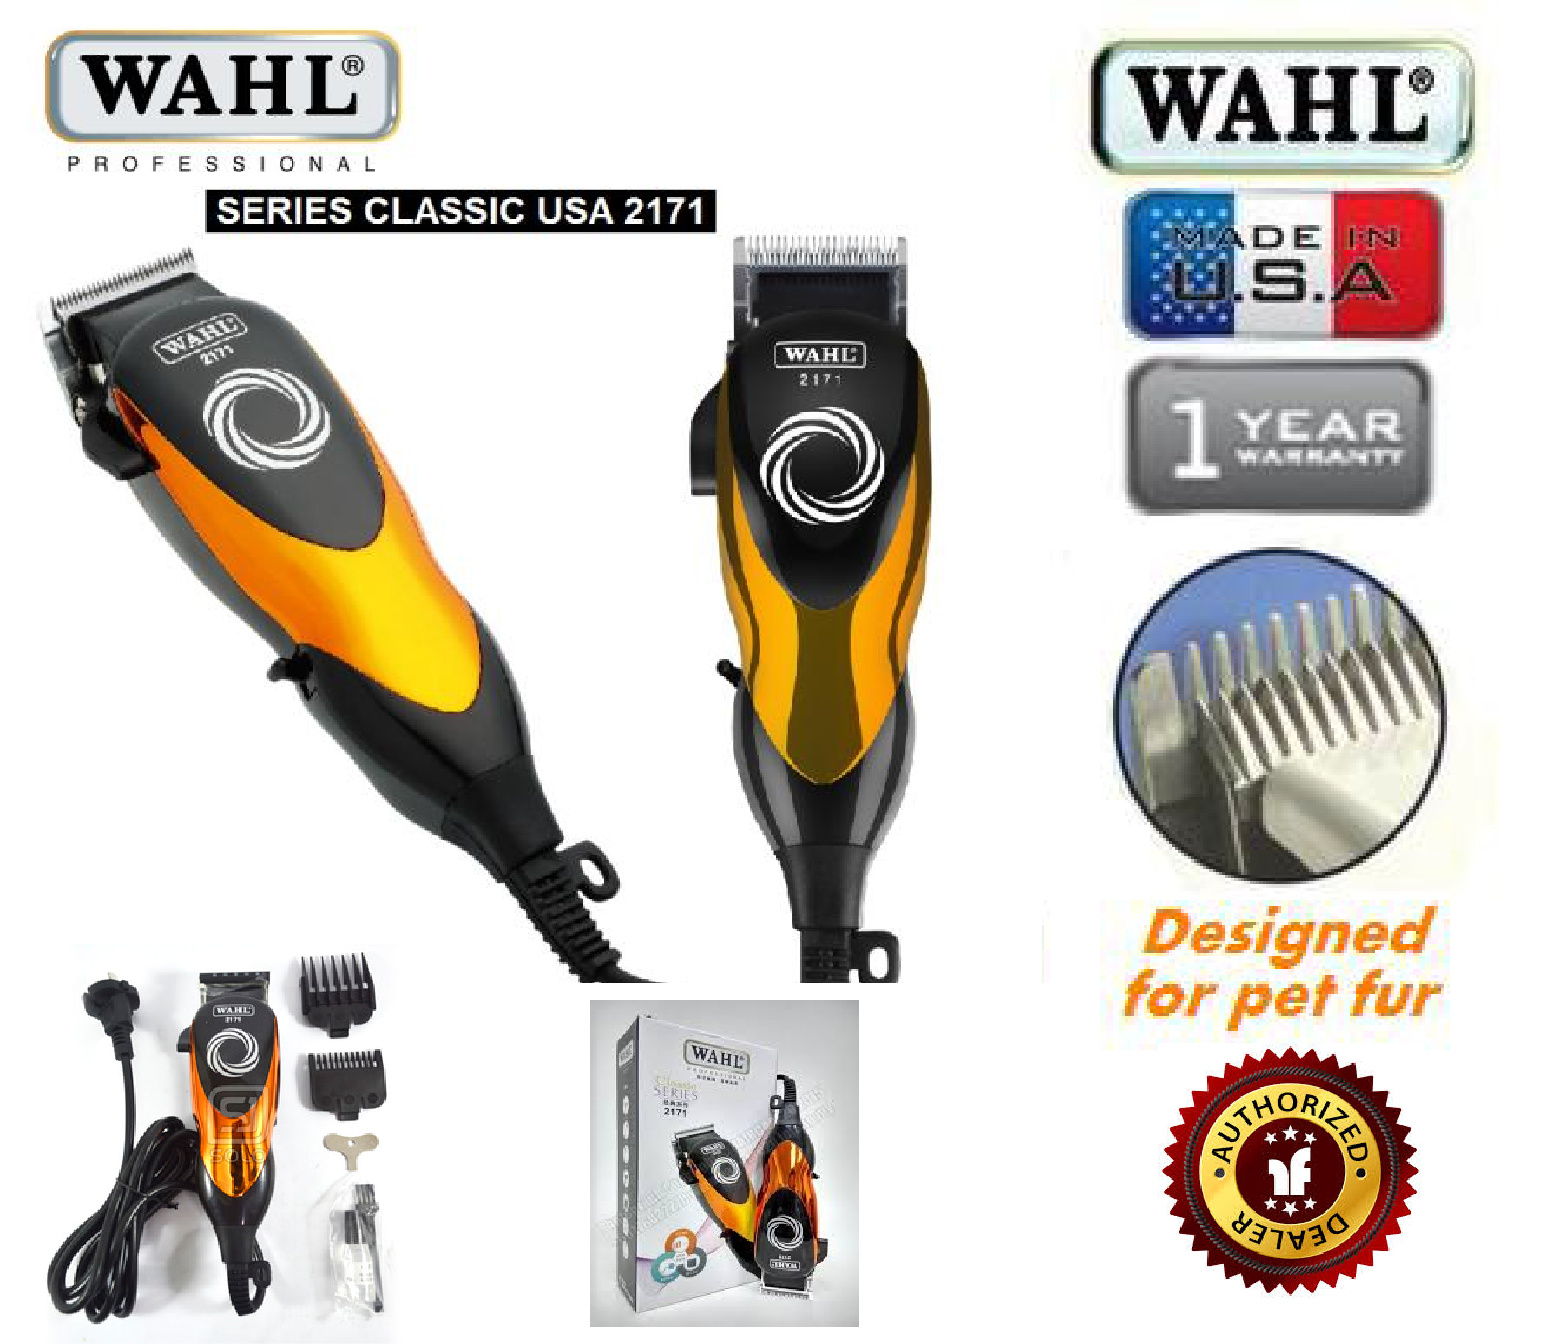 Show All Item Images. close. fit to viewer. prev next. RAYA OFFER WAHL 2171 Original  Professional Heavy Duty GOLD Hair Clipper ( POTONG RAMBUT ) 7e6f1c59c9